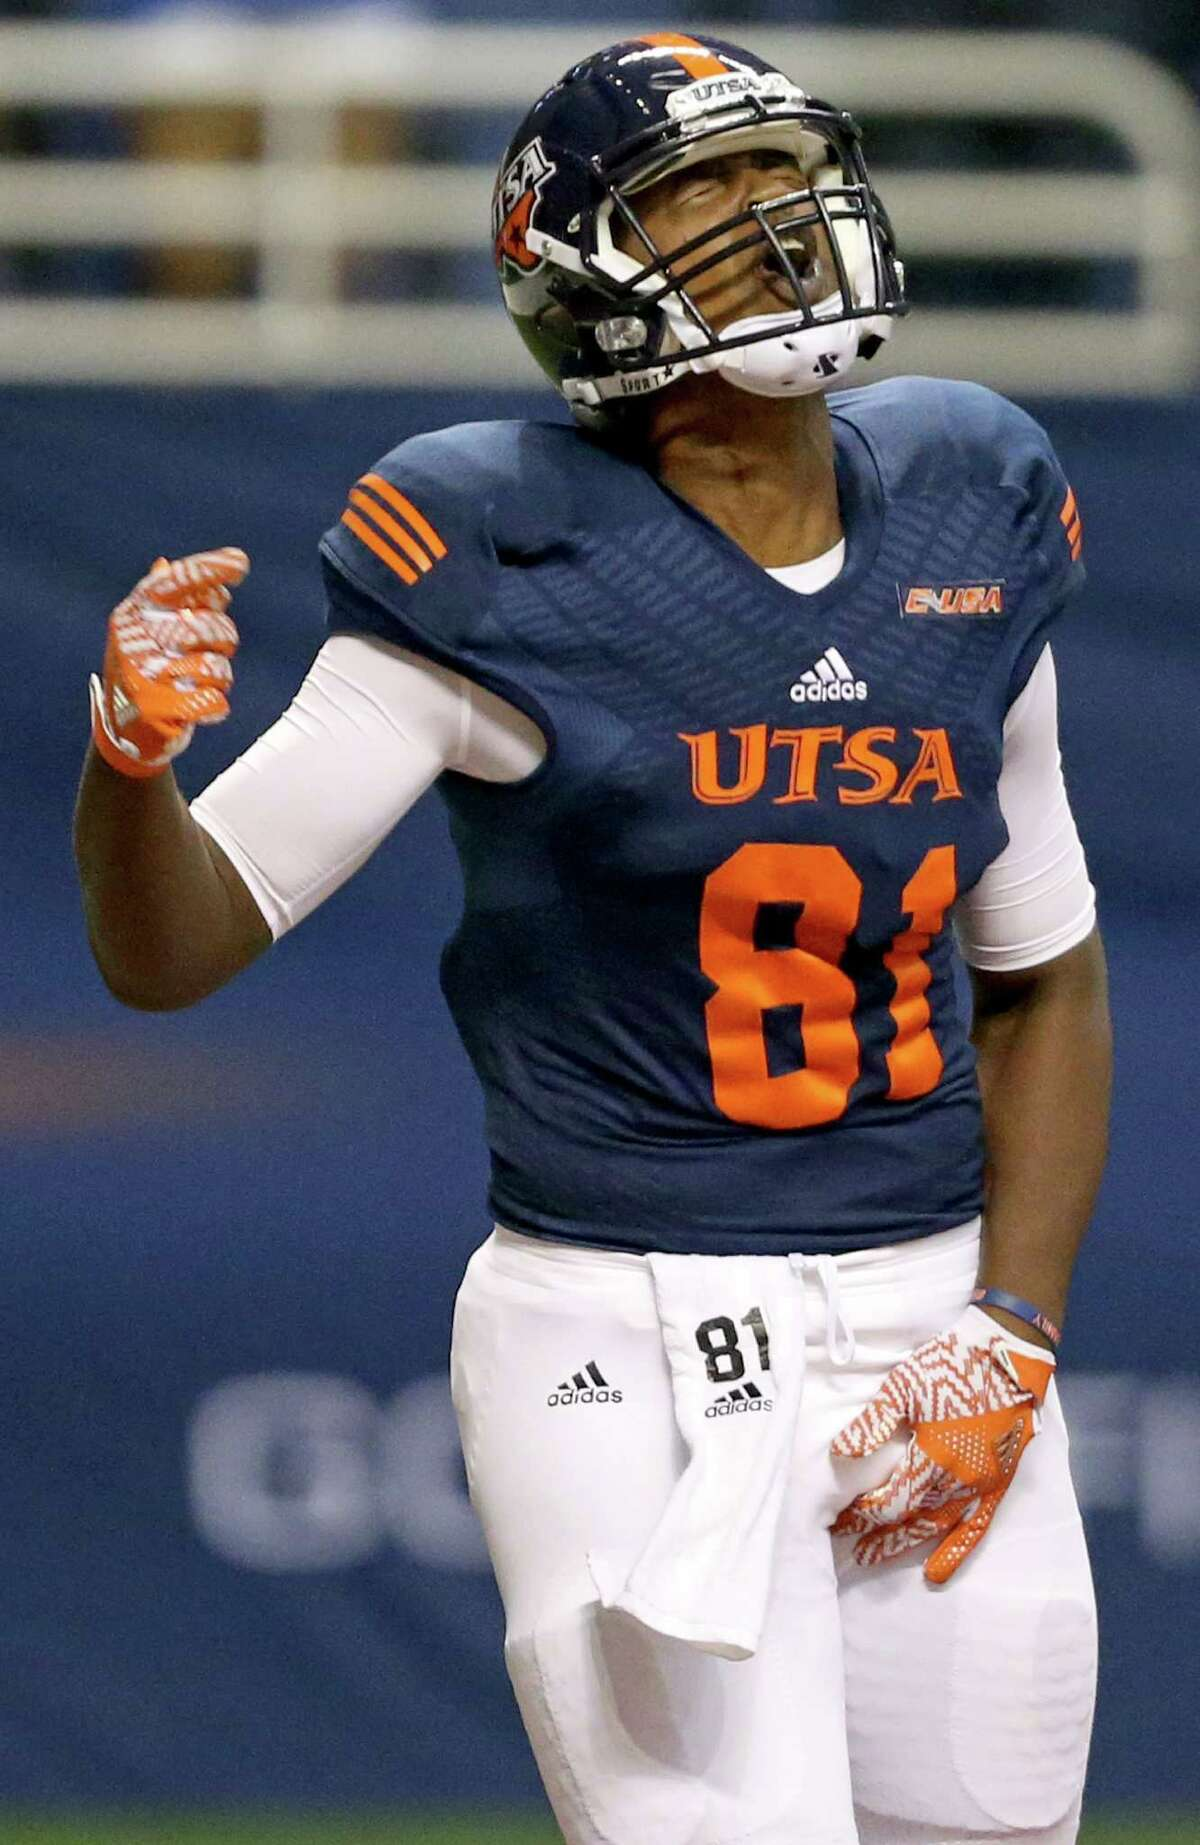 UTSA Roadrunners tight end Shaq Williams celebrates after scoring a touchdown during second half action against the Arizona State Sun Devils Friday Sept. 16, 2016 at the Alamodome. The Arizona State Sun Devils won 32-28.